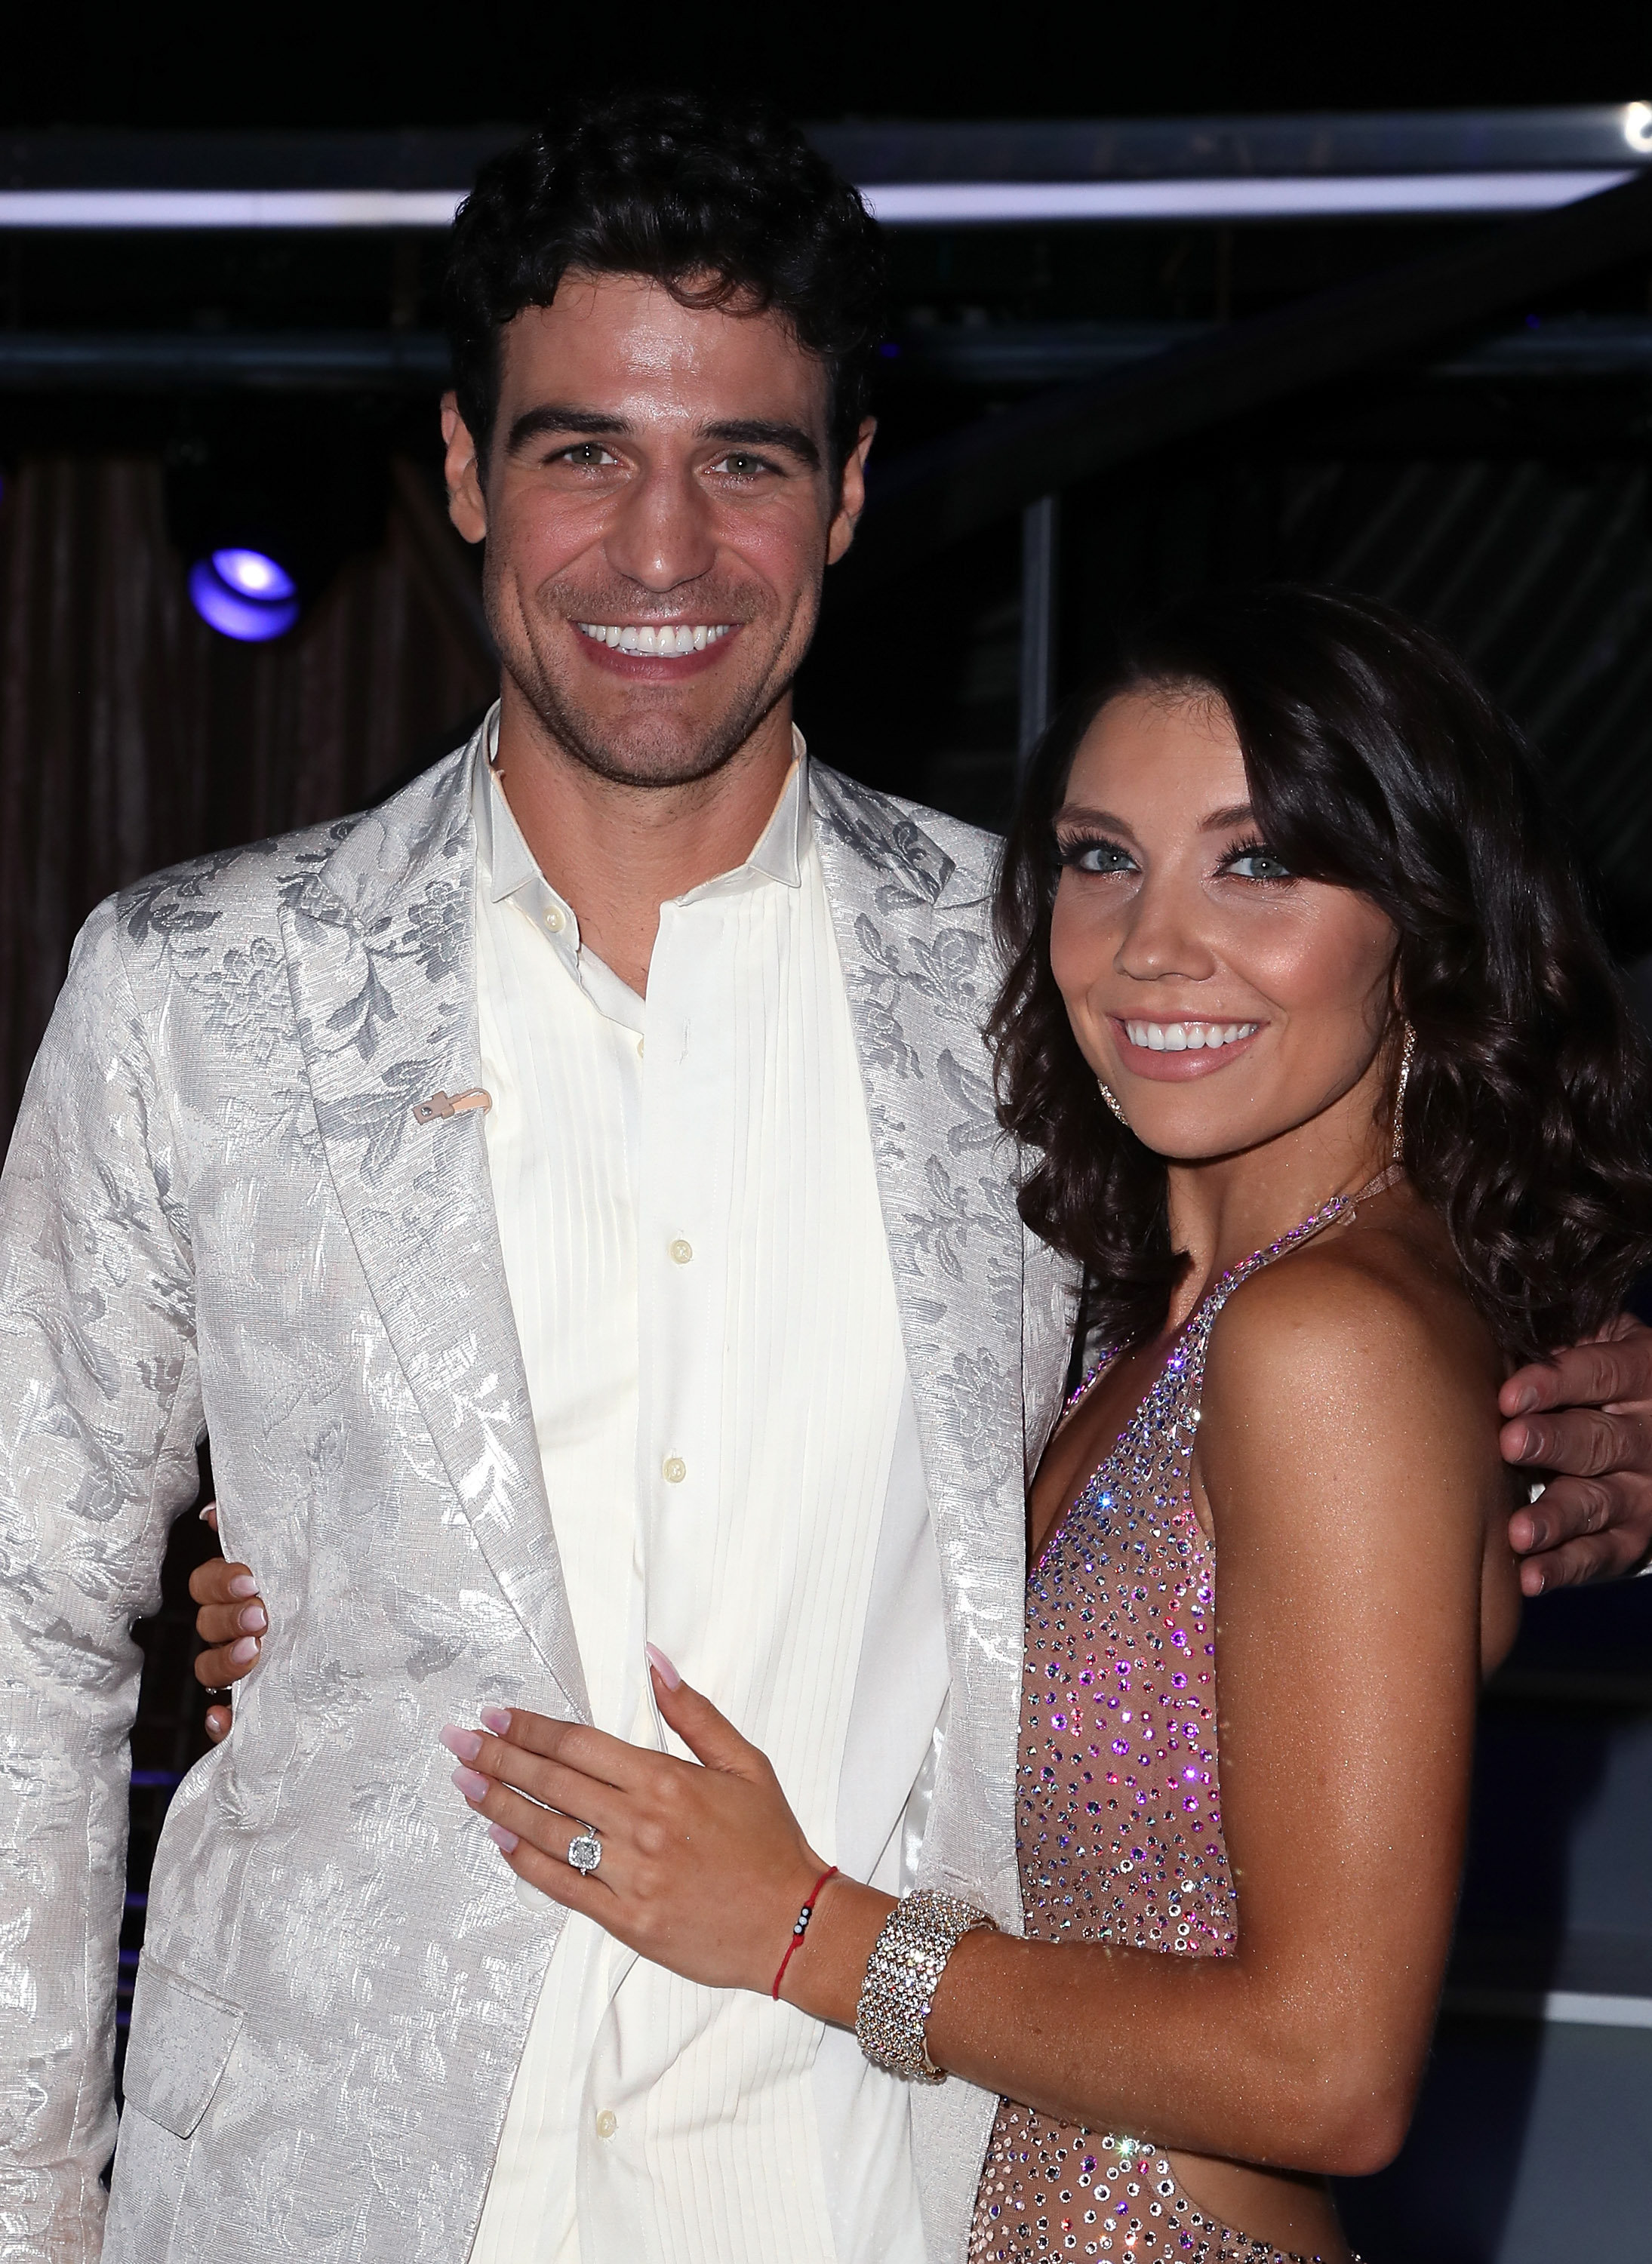 Joe Amabile (L) and Jenna Johnson pose at 'Dancing with the Stars' Season 27 at CBS Television City on September 24, 2018 in Los Angeles, California.